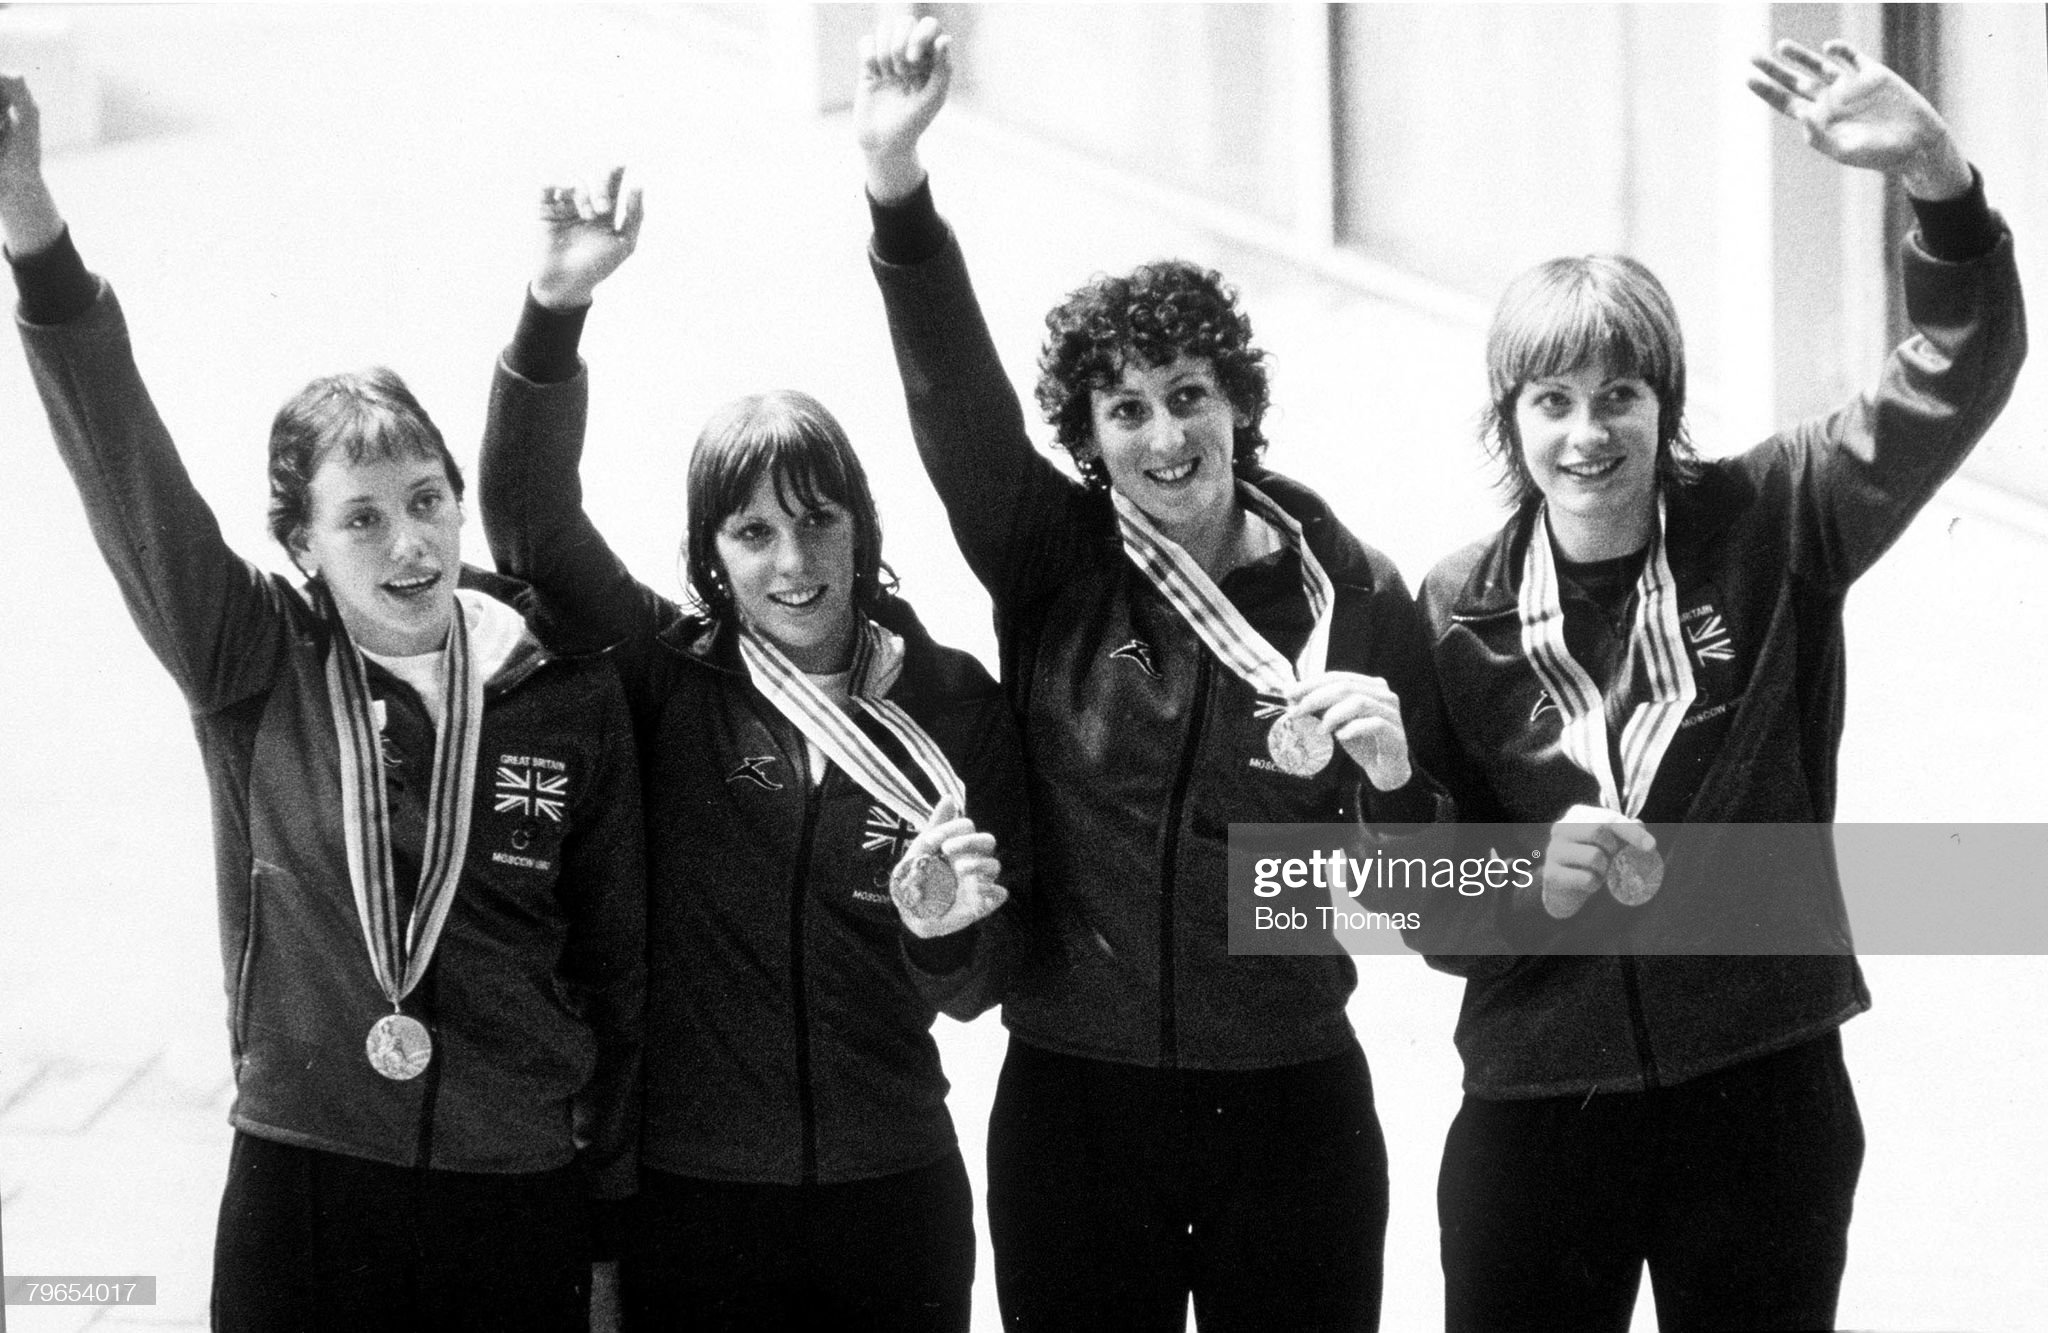 1980 Olympic Games, Moscow, USSR, Women's 4 x 100 Metres Medley, Great Britain gold medal winners L-R: June Croft, Ann Osgerby, Margaret Kelly and Helen Jameson wave as they stand on the podium : Fotografía de noticias